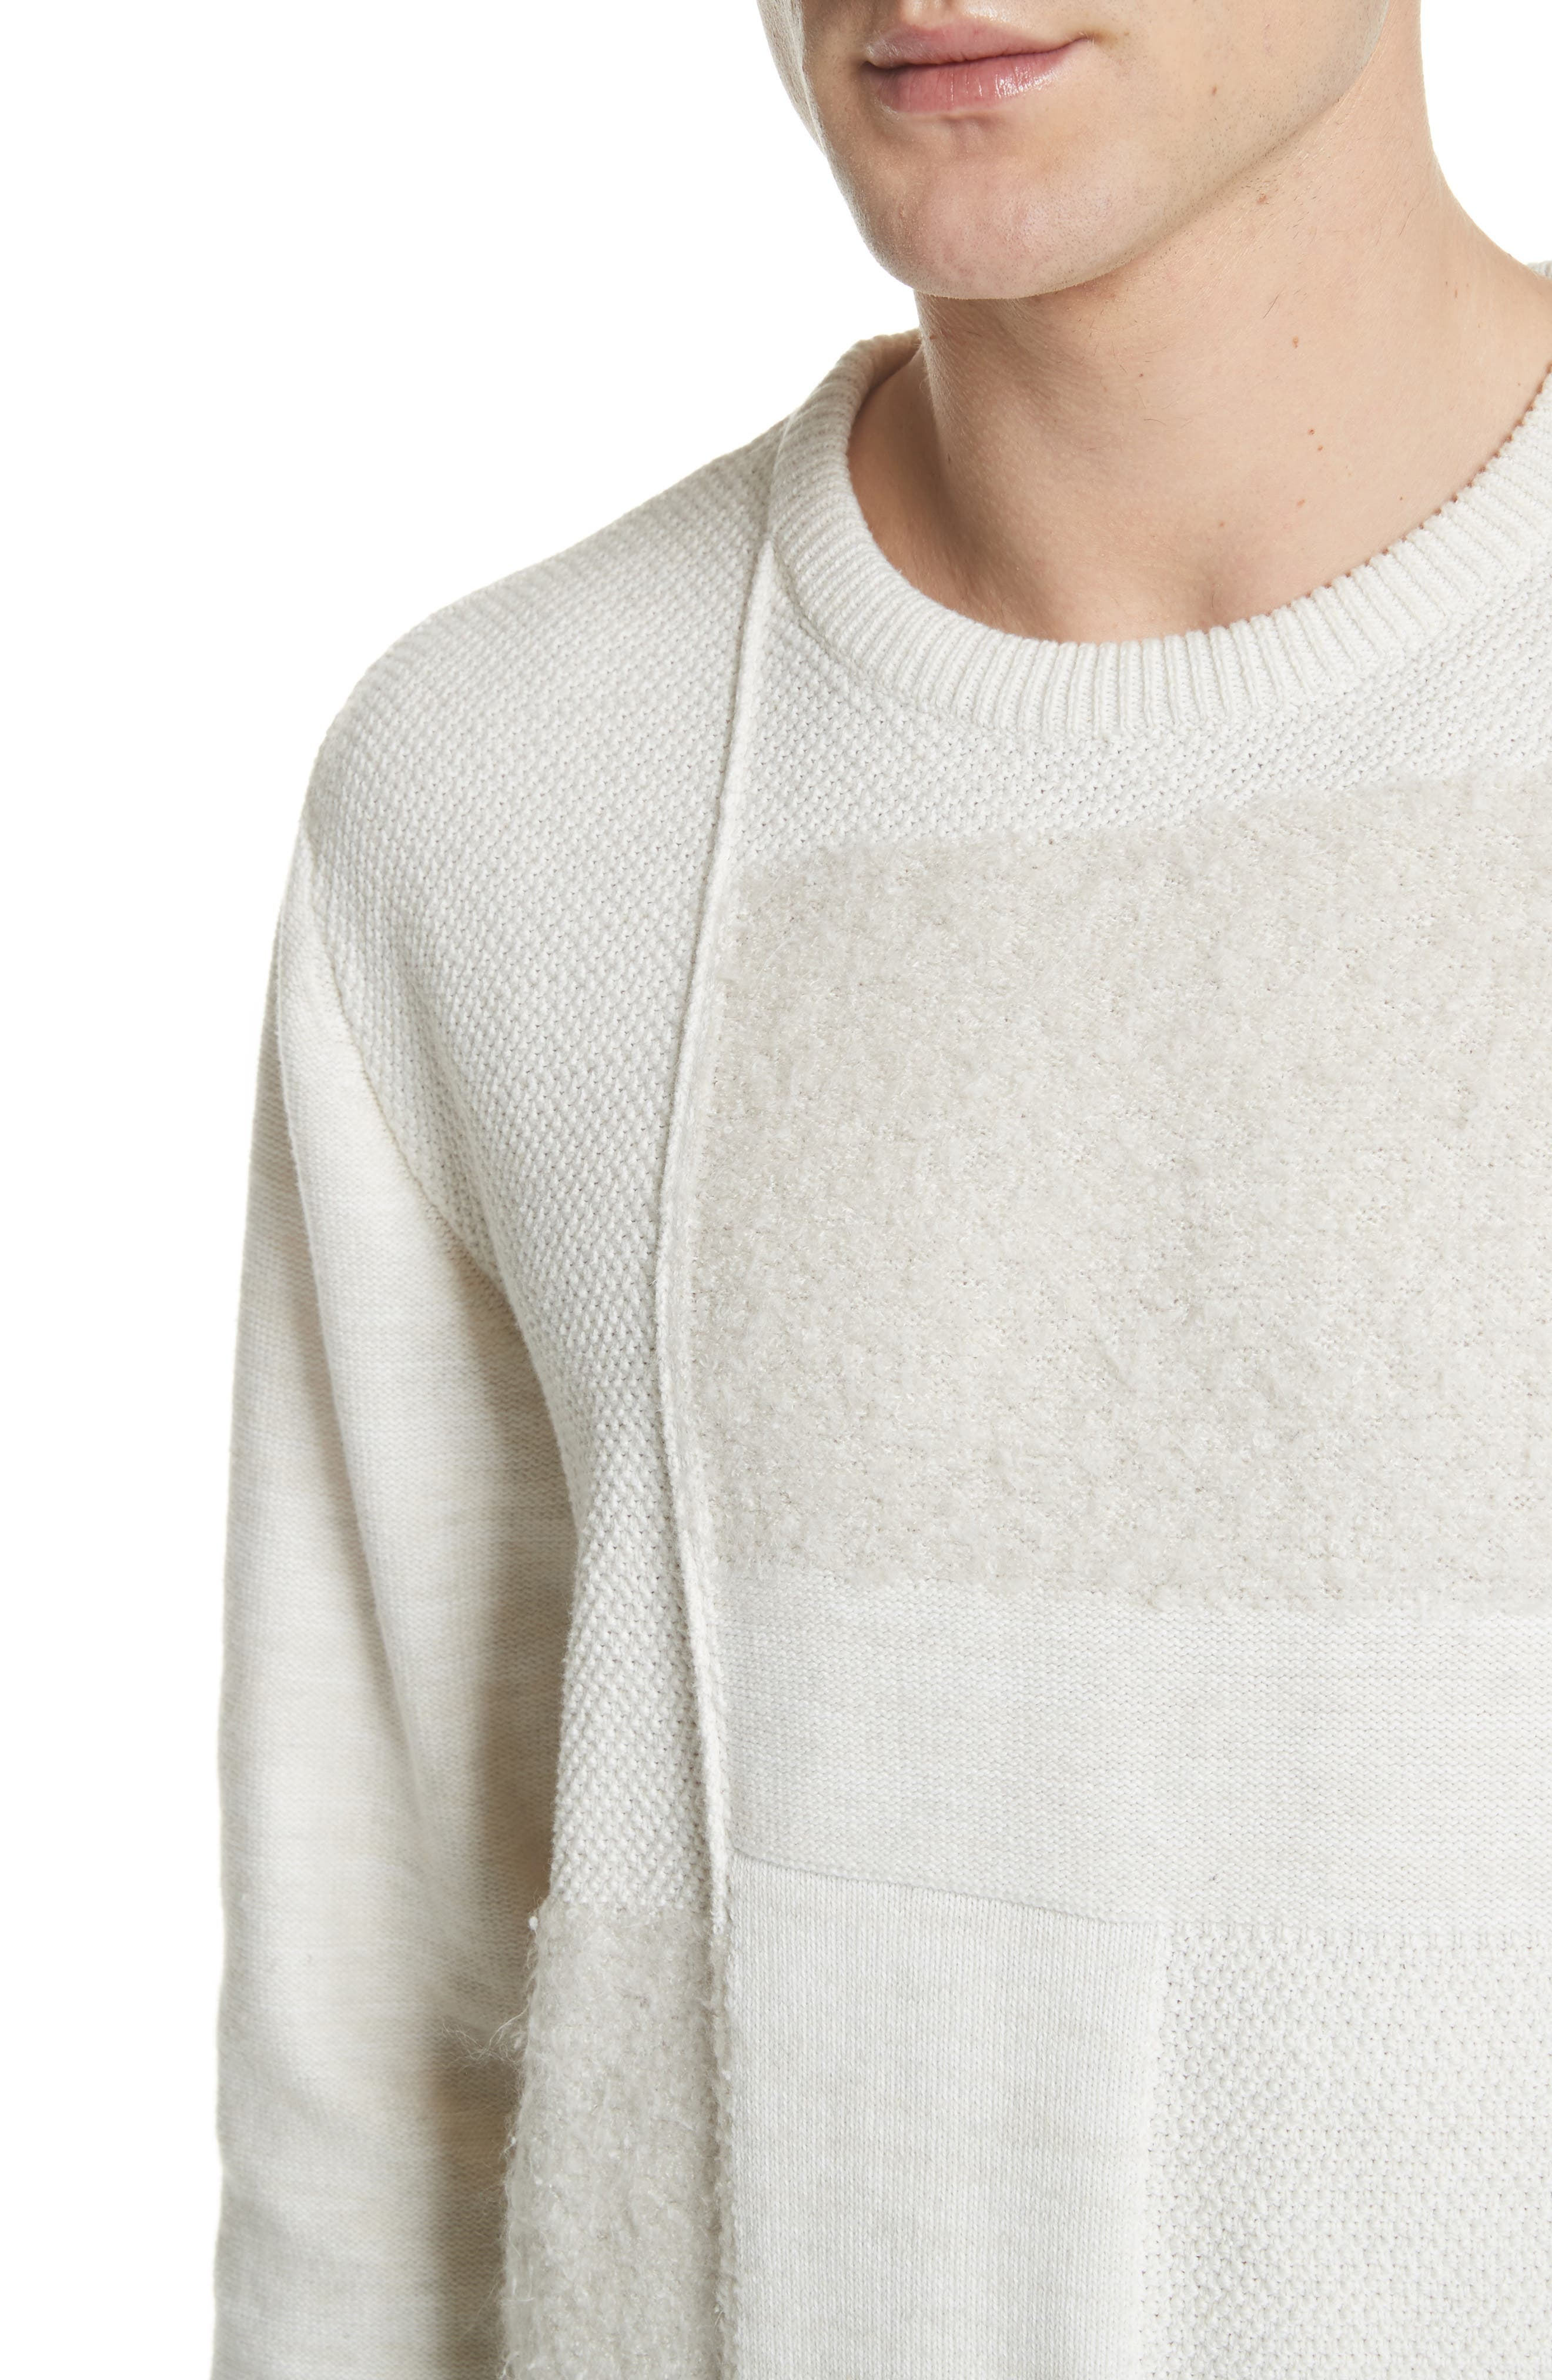 Oversized Silk Sweater,                             Alternate thumbnail 4, color,                             101